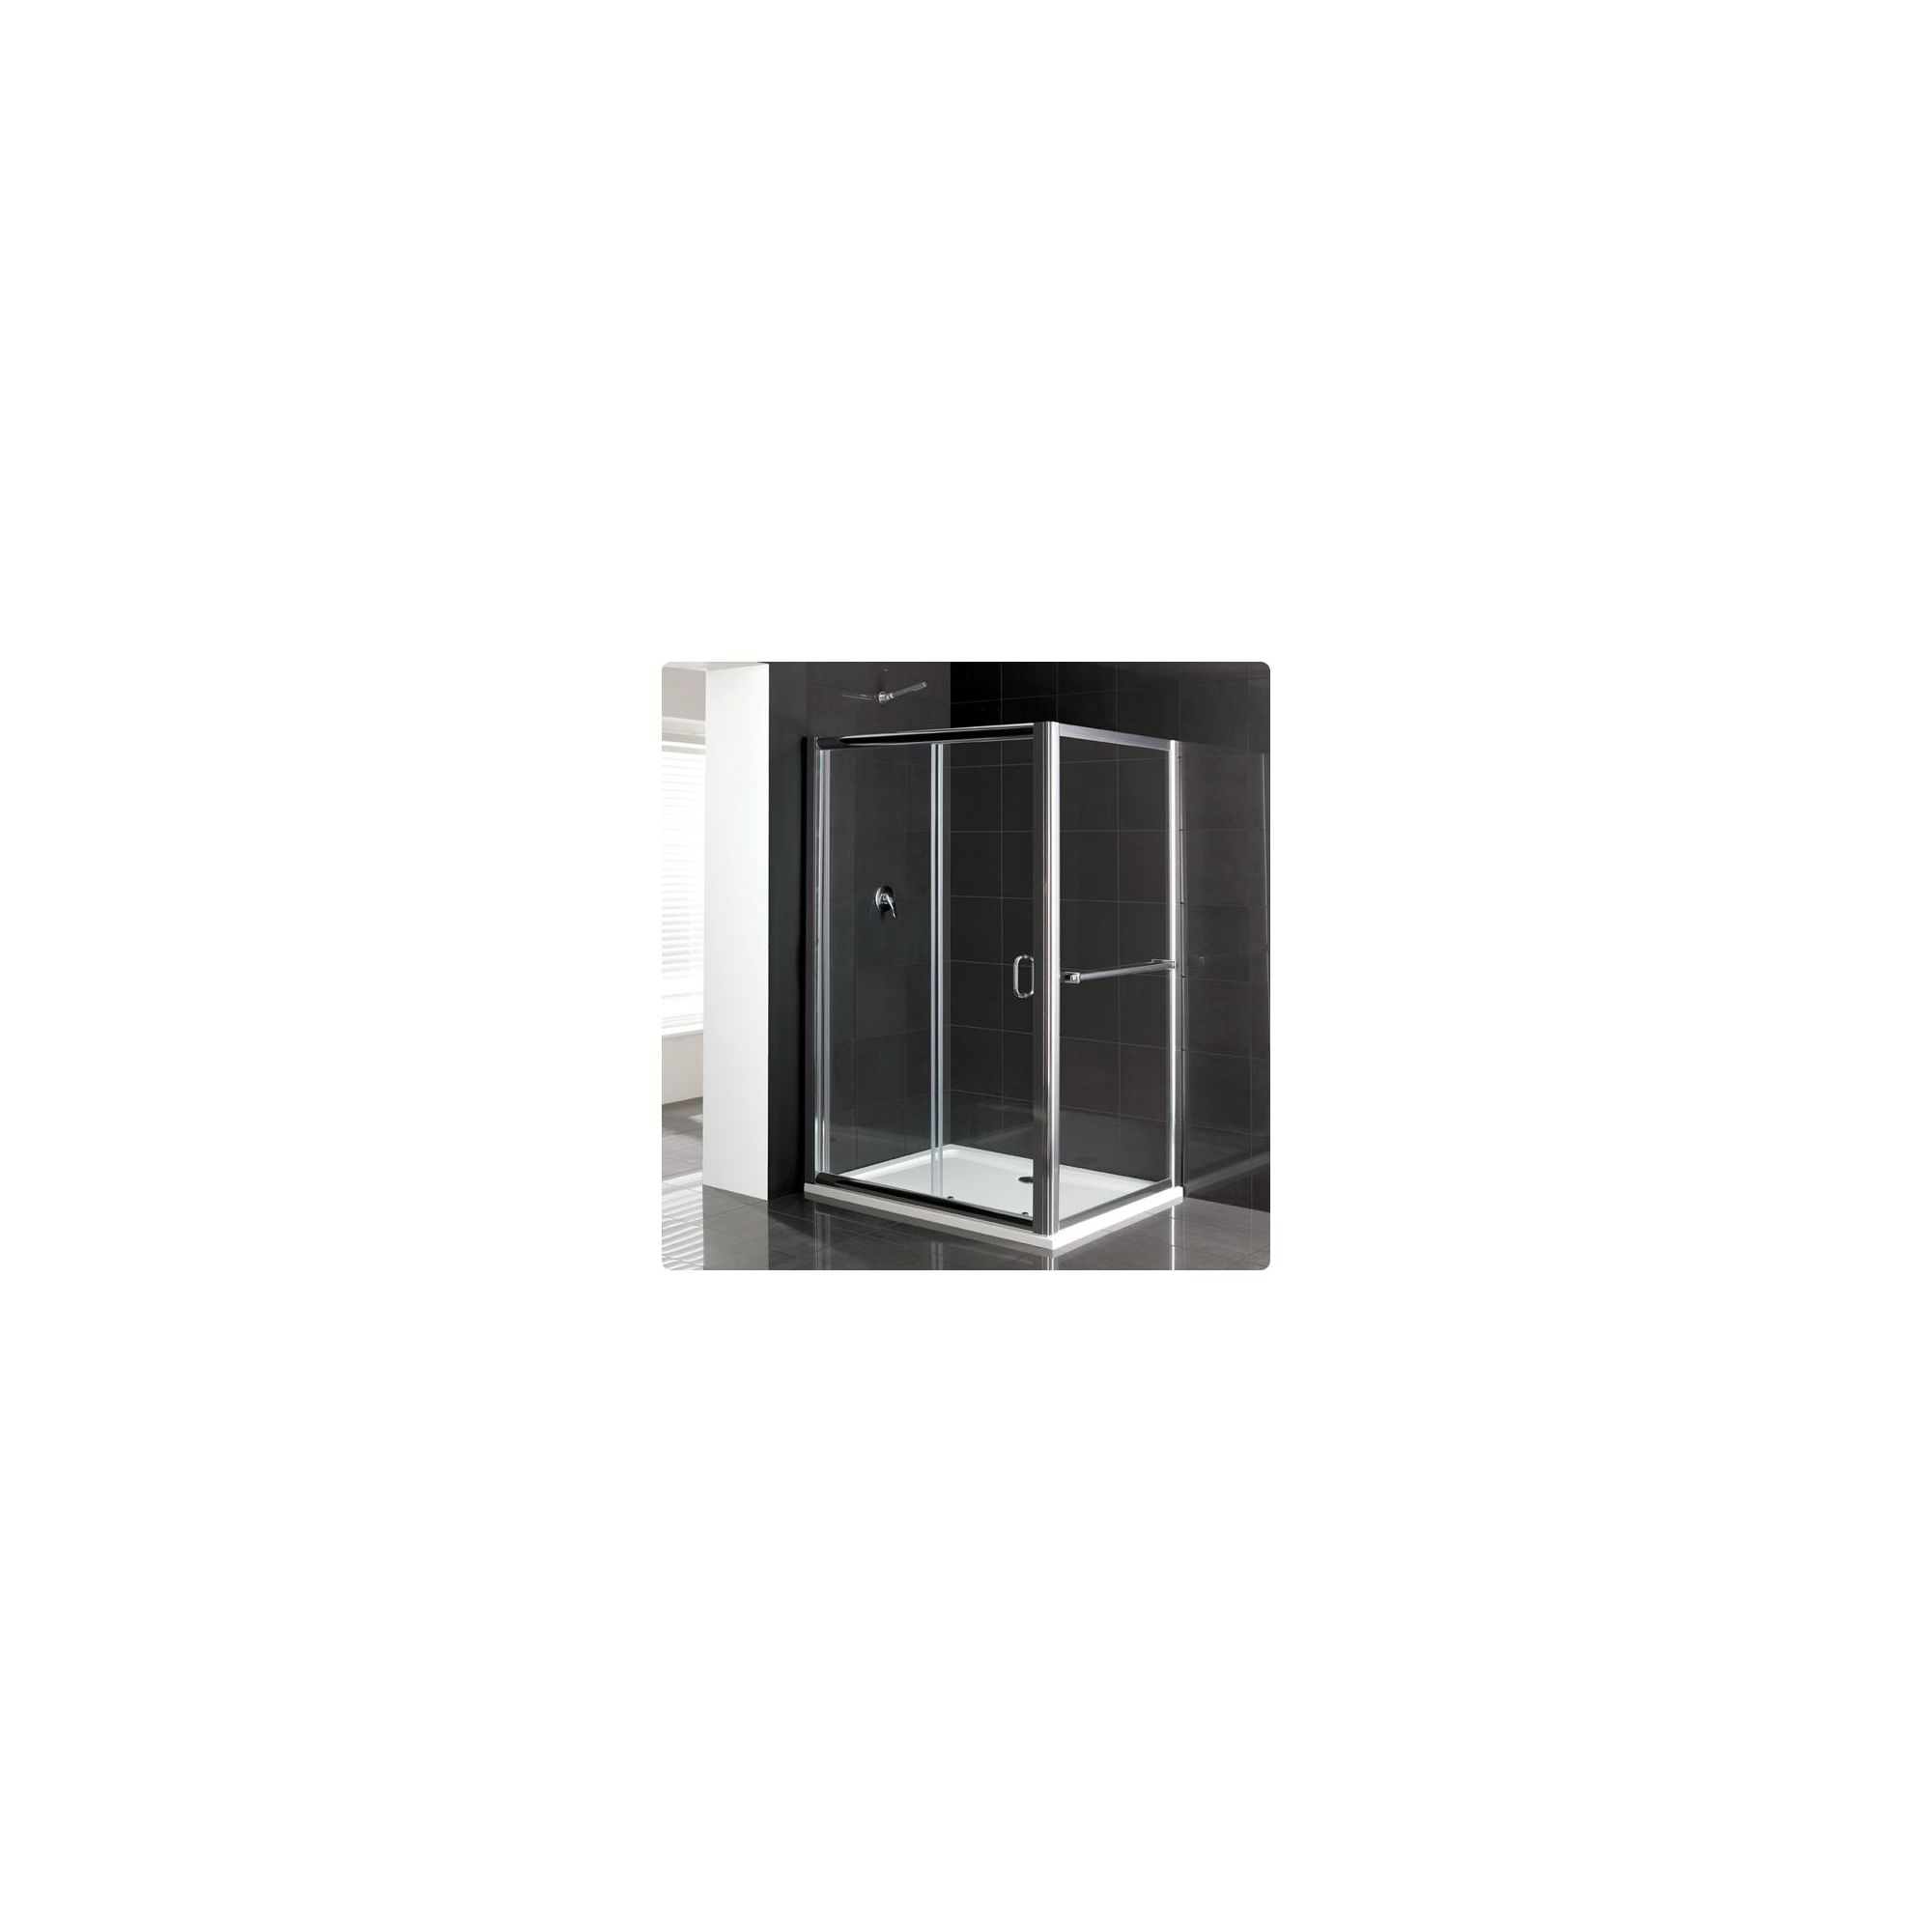 Duchy Elite Silver Sliding Door Shower Enclosure with Towel Rail, 1700mm x 800mm, Standard Tray, 6mm Glass at Tesco Direct